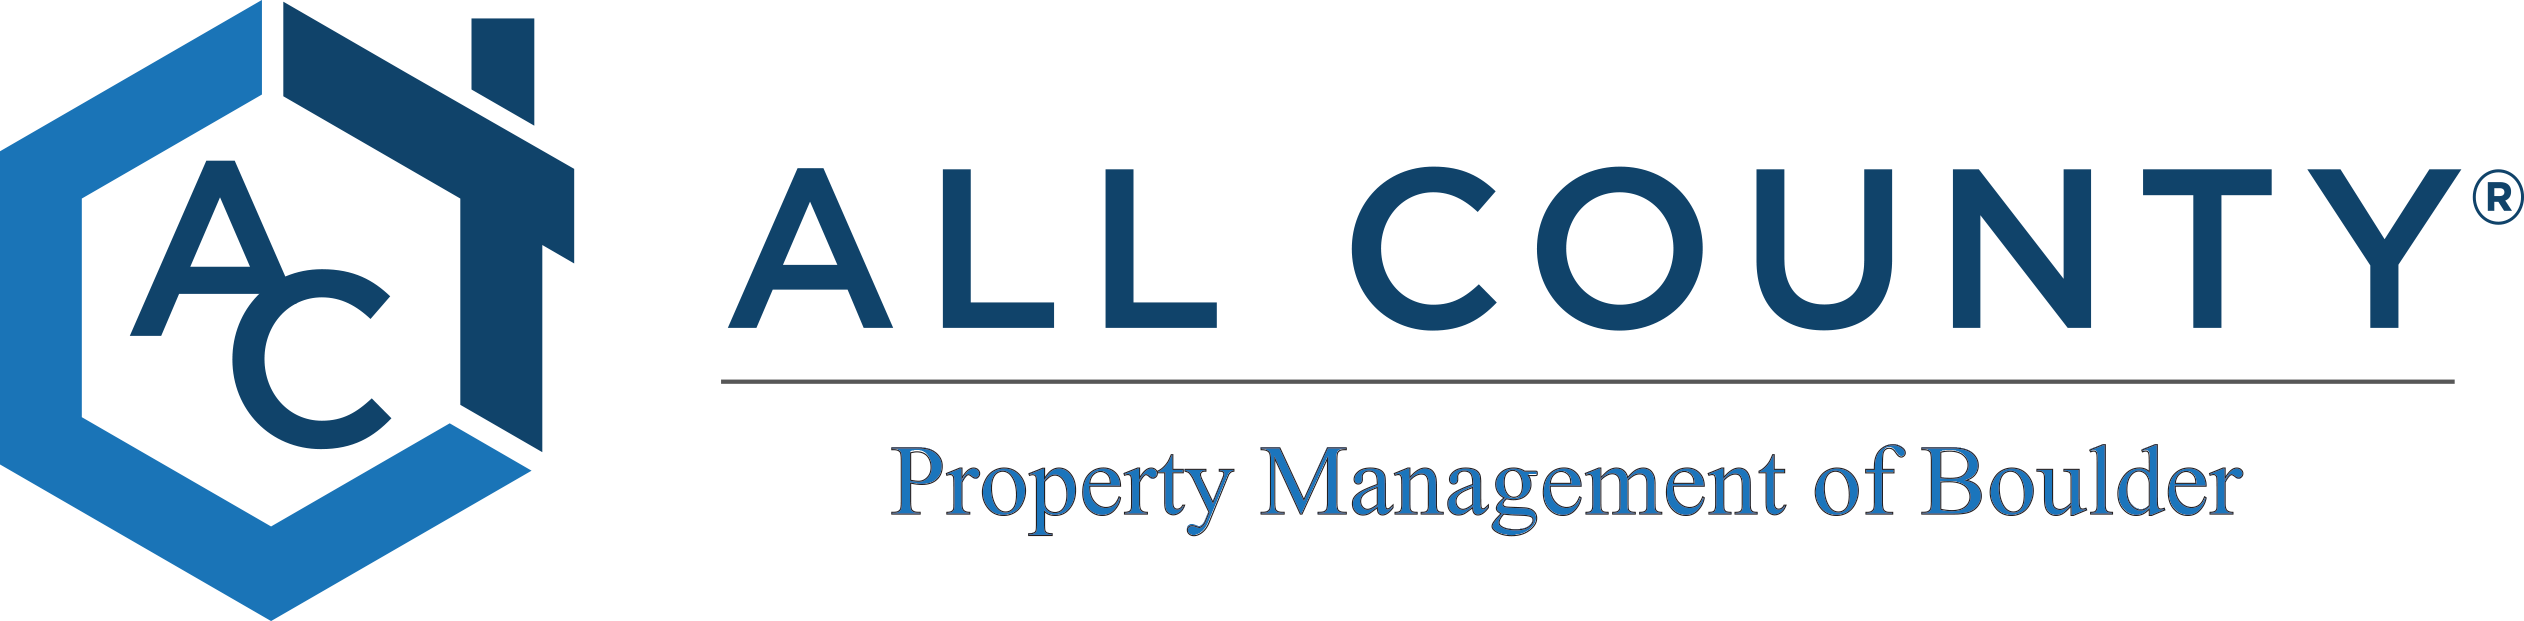 All County Property Management of Boulder CO